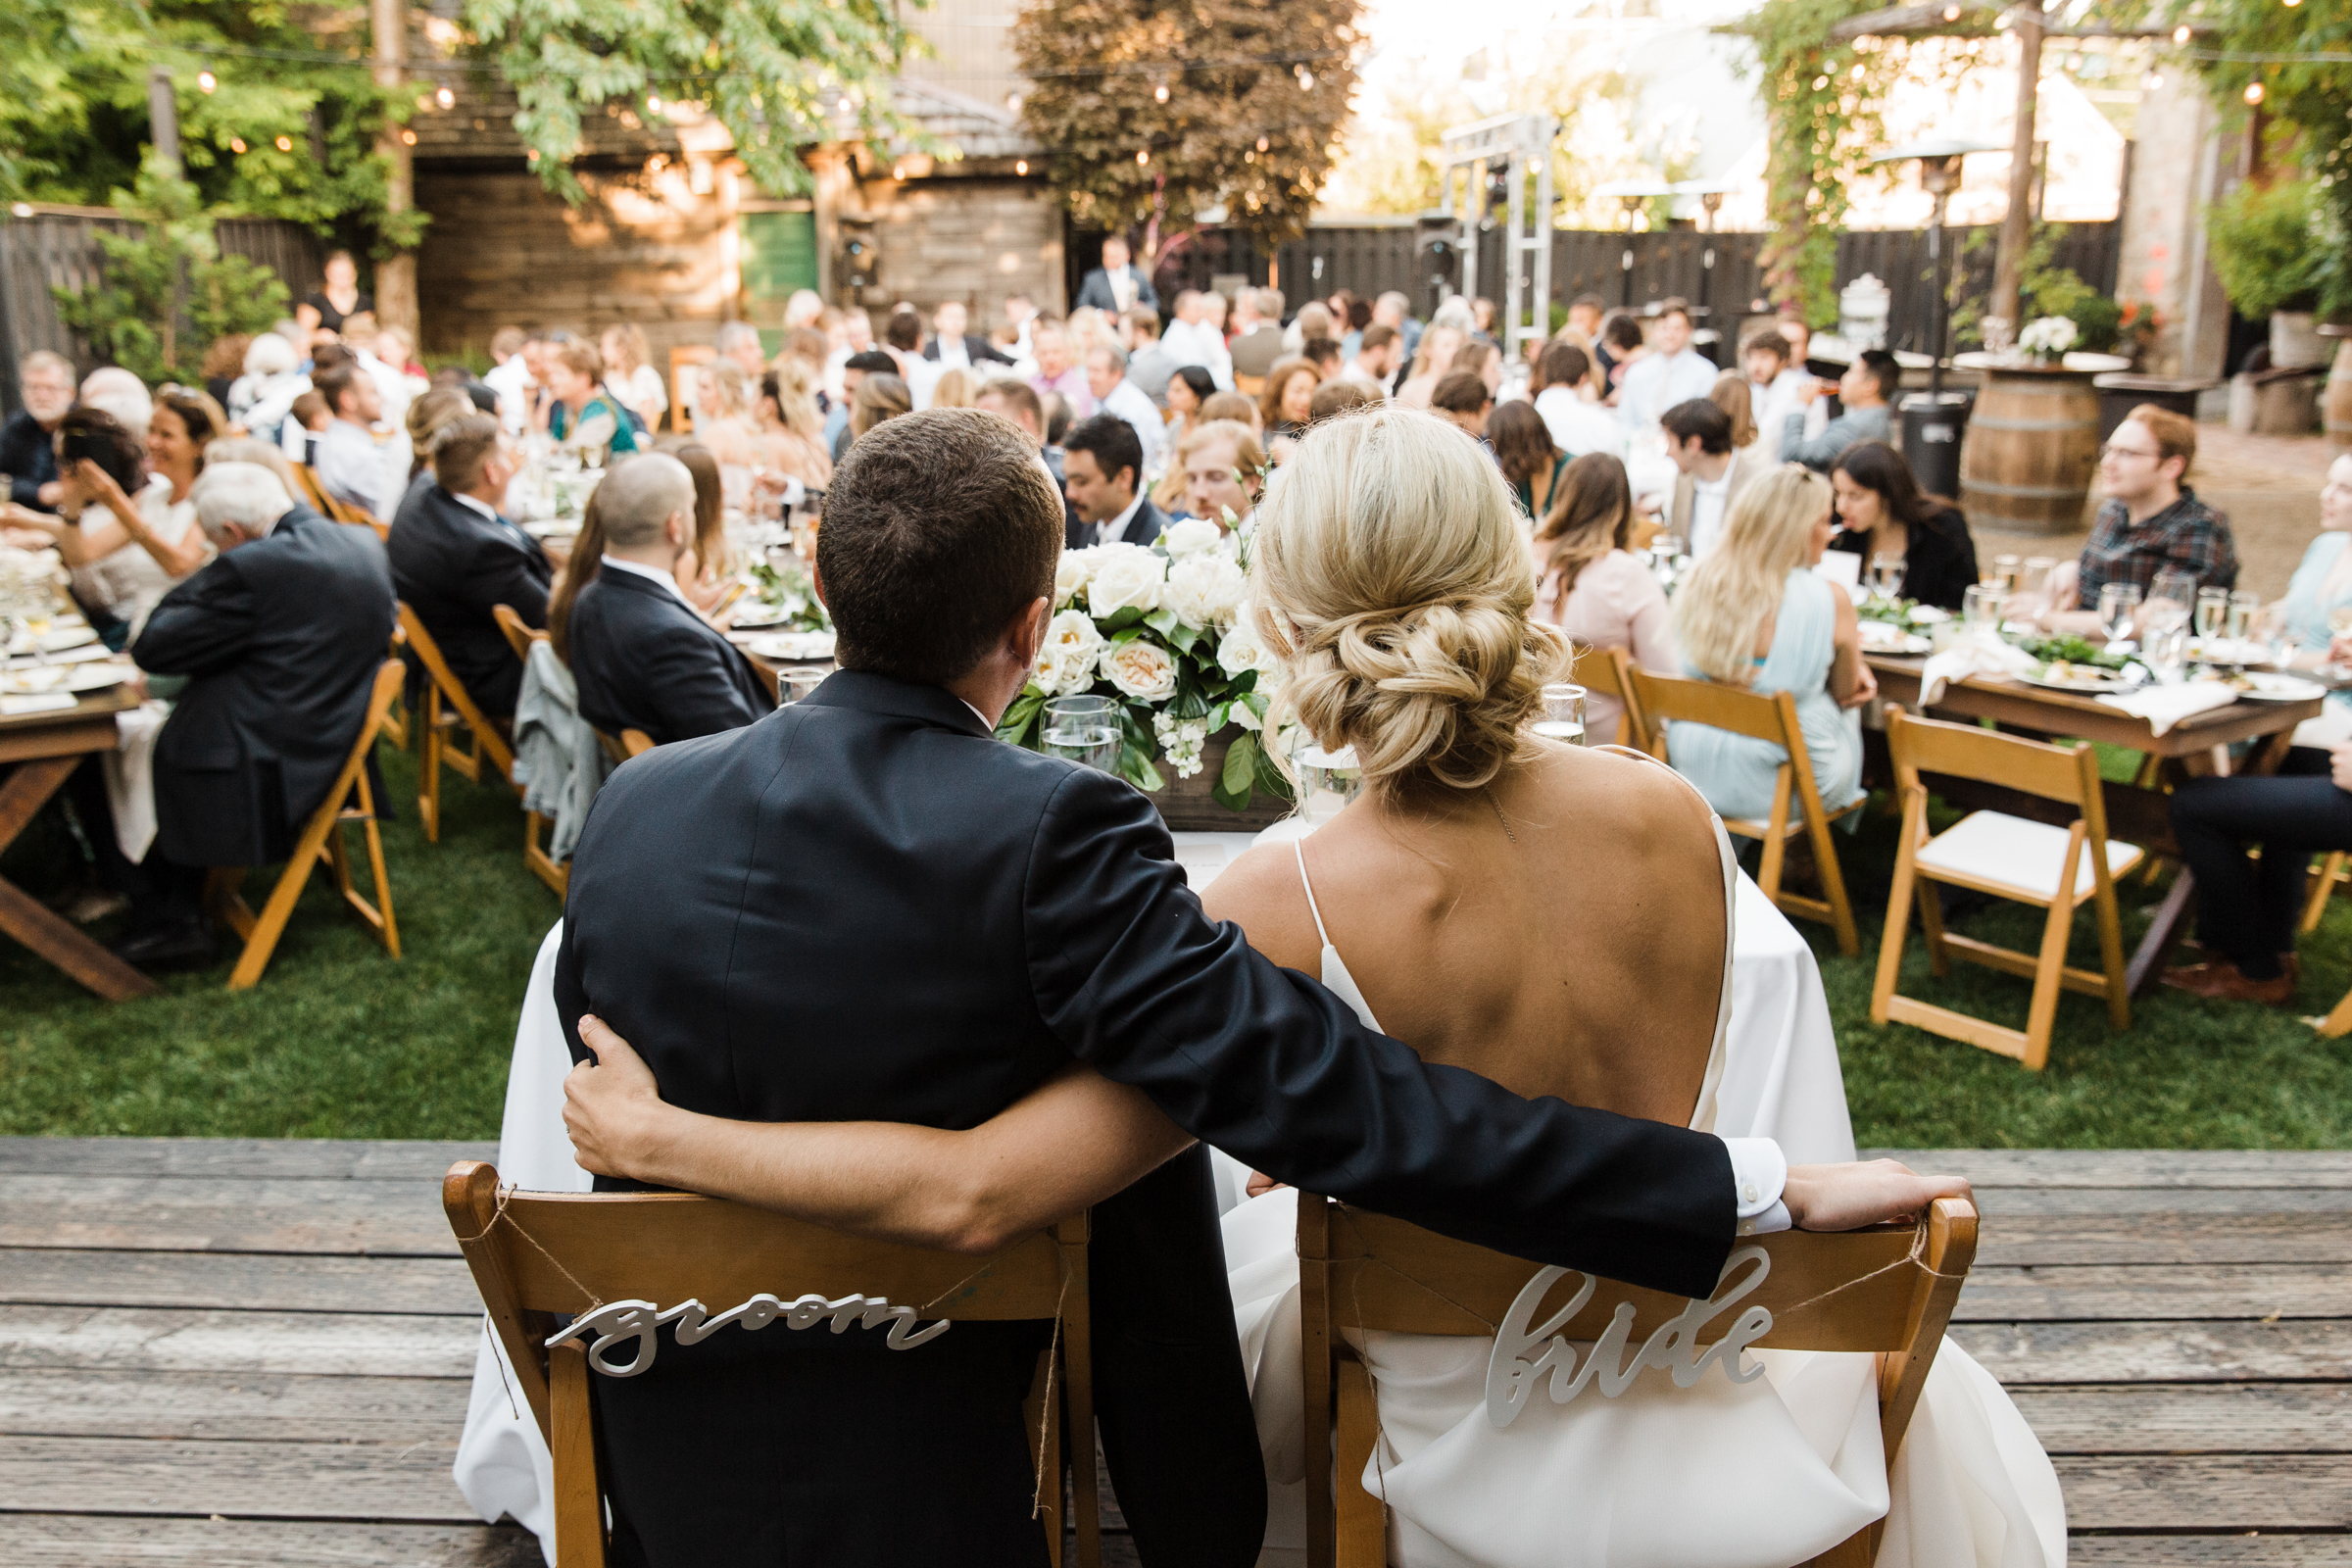 Bride and groom look out at guests - photo by Stephanie Cristalli Photography